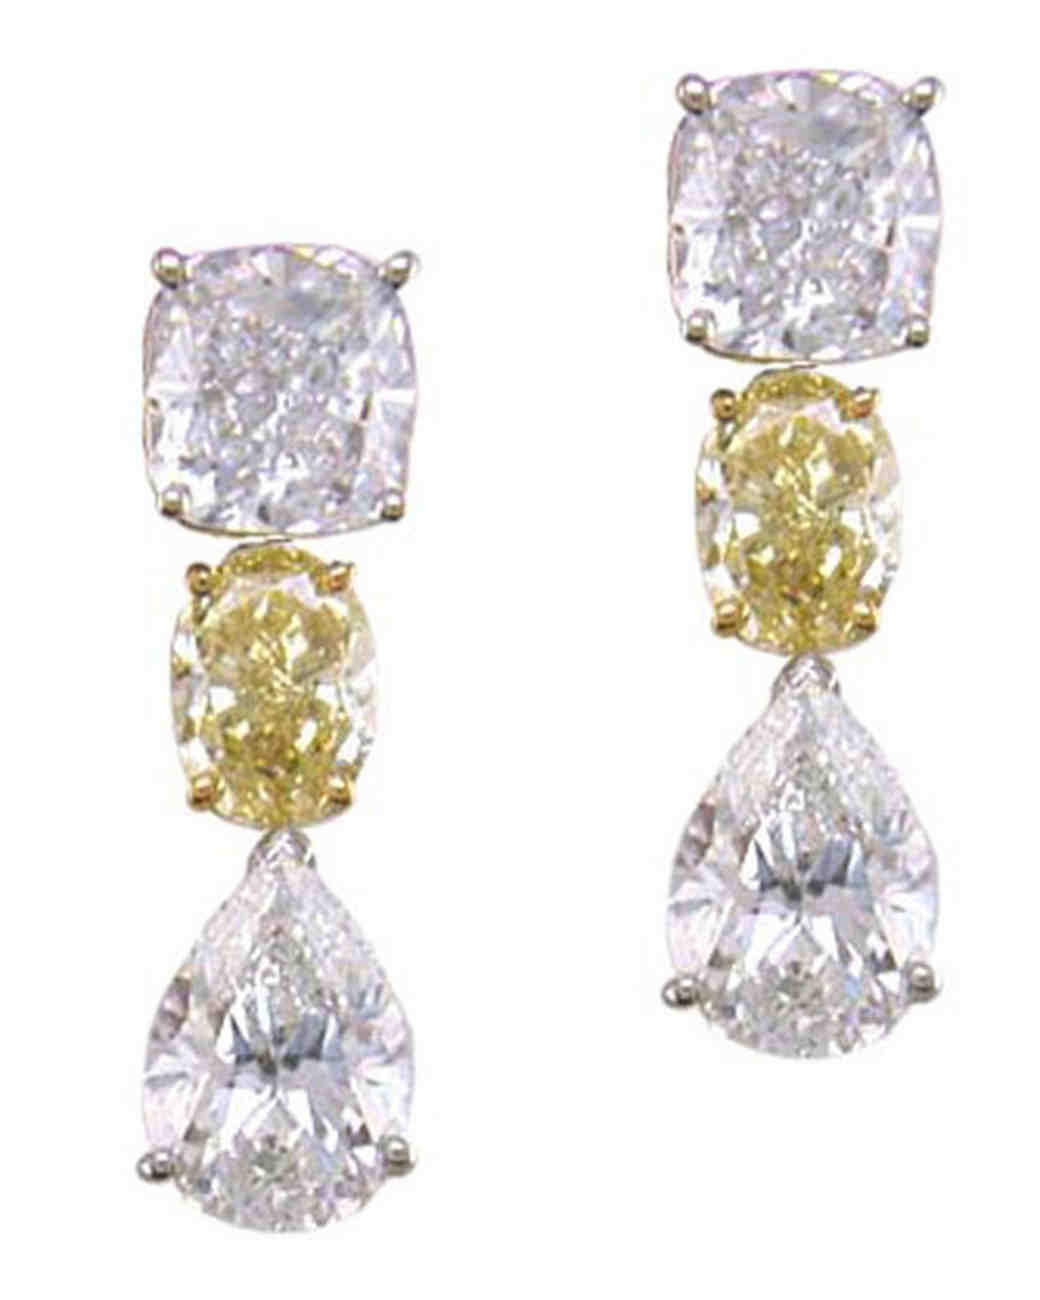 heyman_ohb_705764_gold_plat_fcy_dia_earrings.jpg